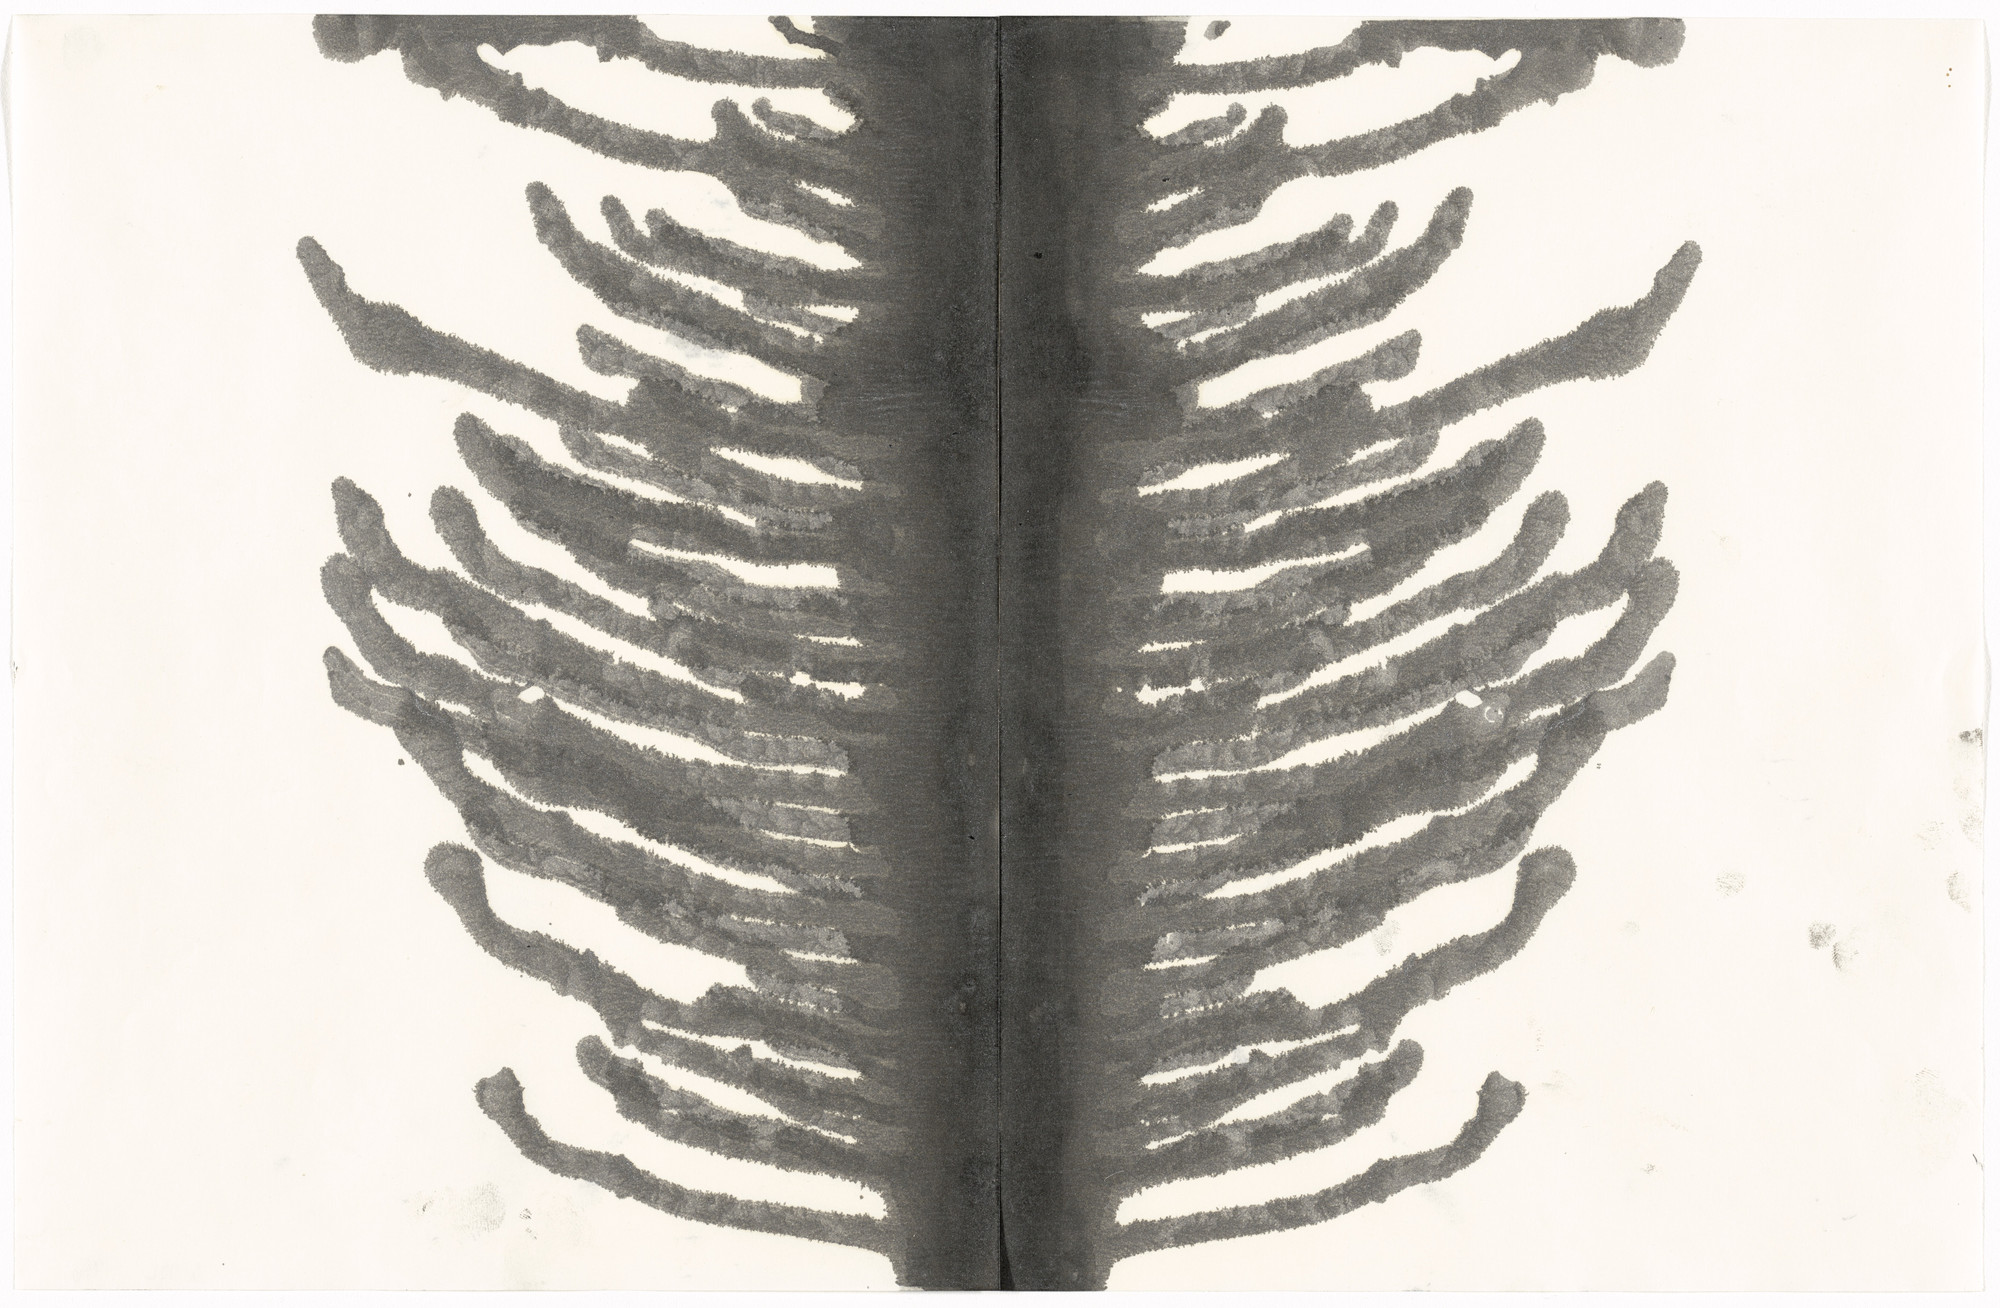 Christopher Wool. Untitled. 1986